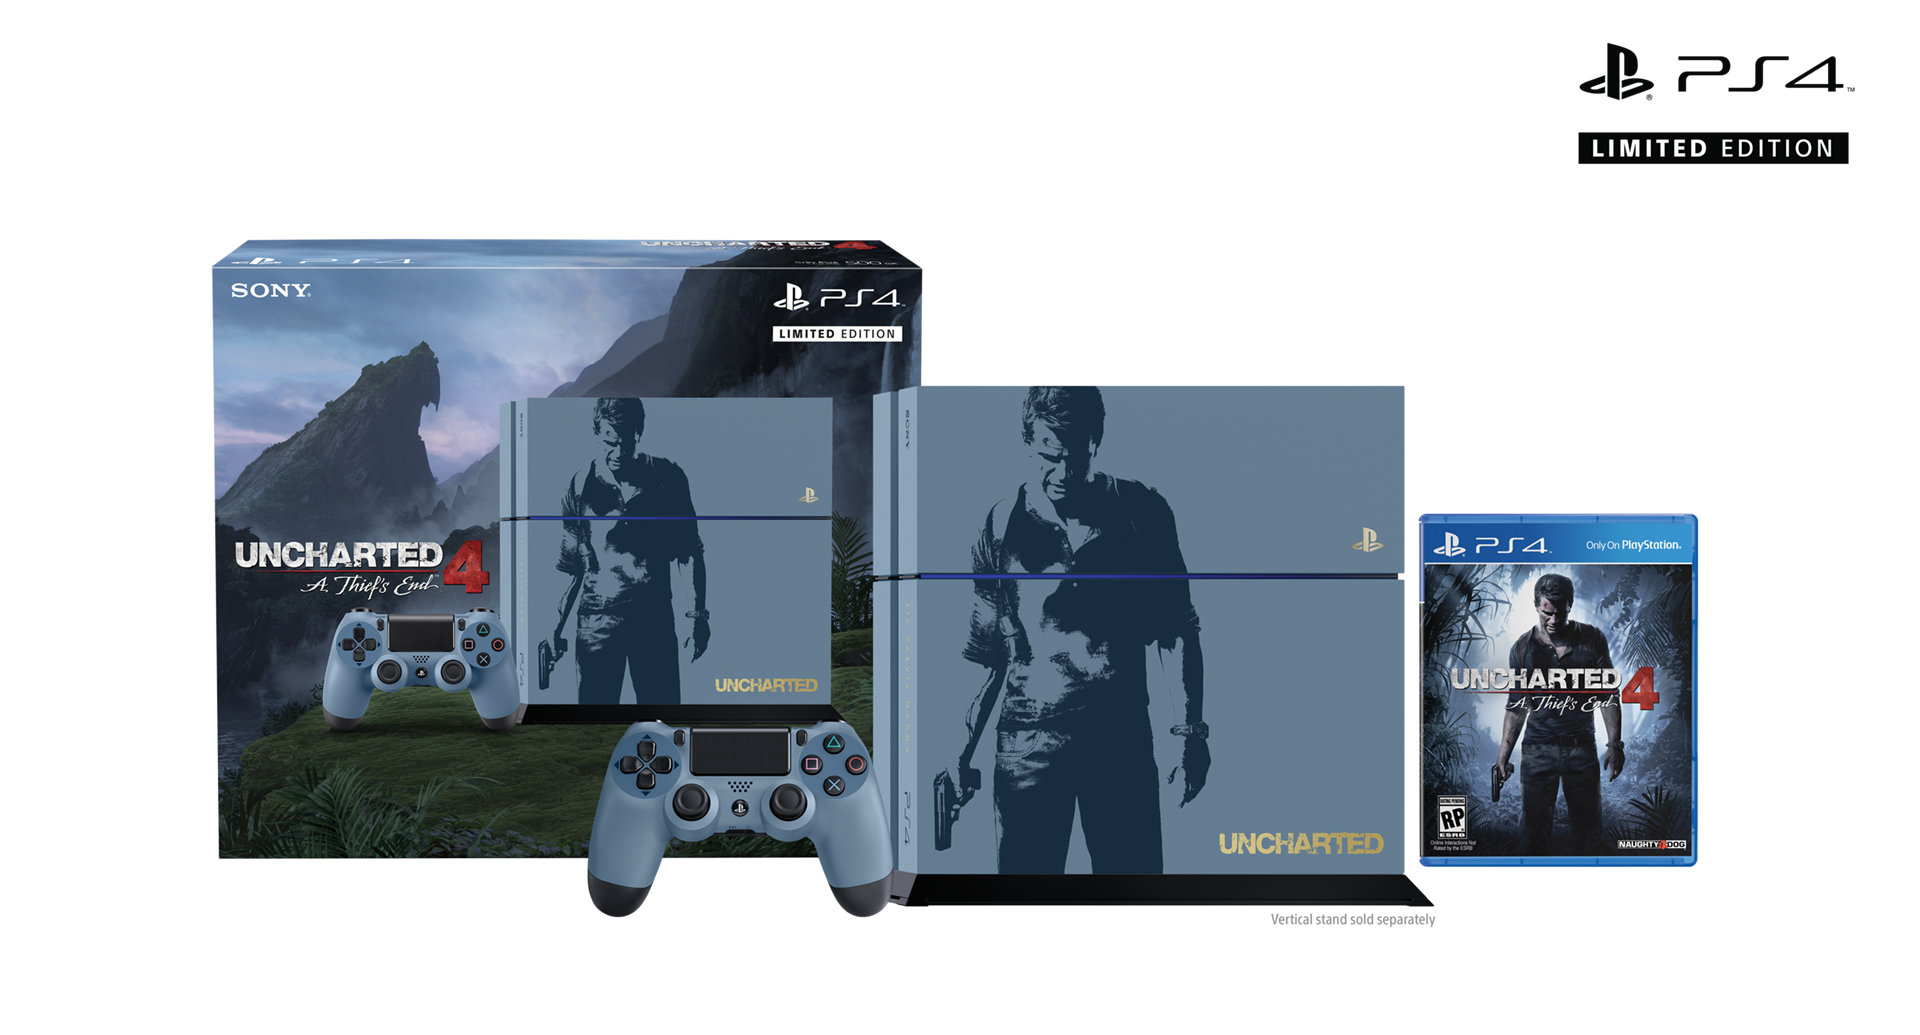 Uncharted 4: A Thief's End gets its own PlayStation 4 bundle